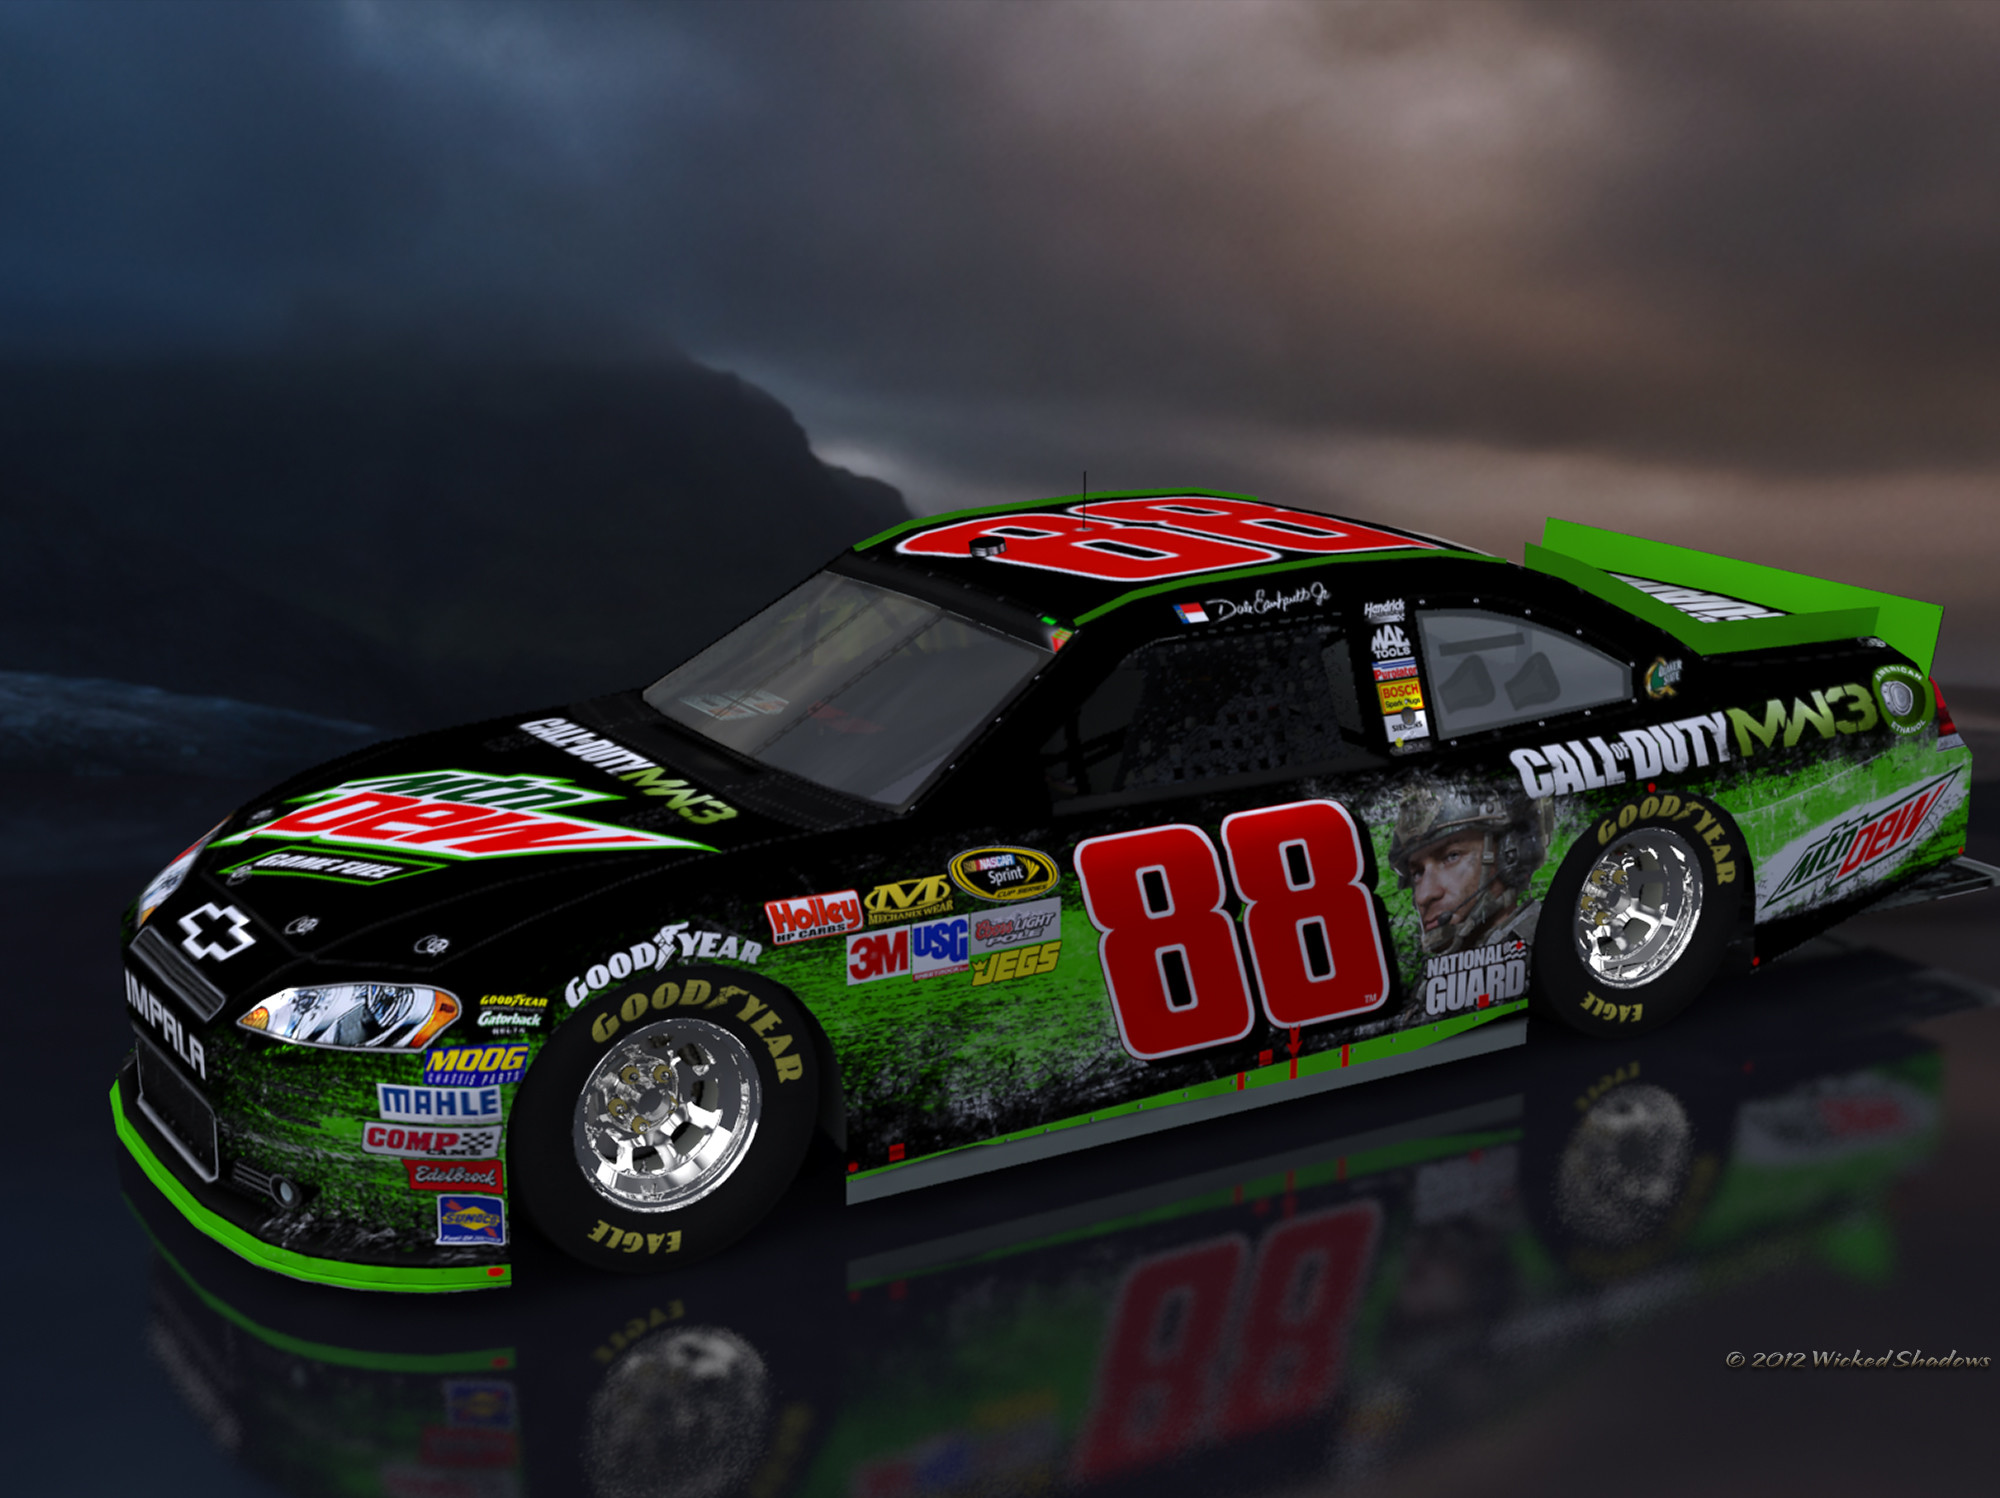 Free Dale Earnhardt Jr Wallpaper. 88 desktop wallpaper 8 html filesize  x1500 www 2000 1500